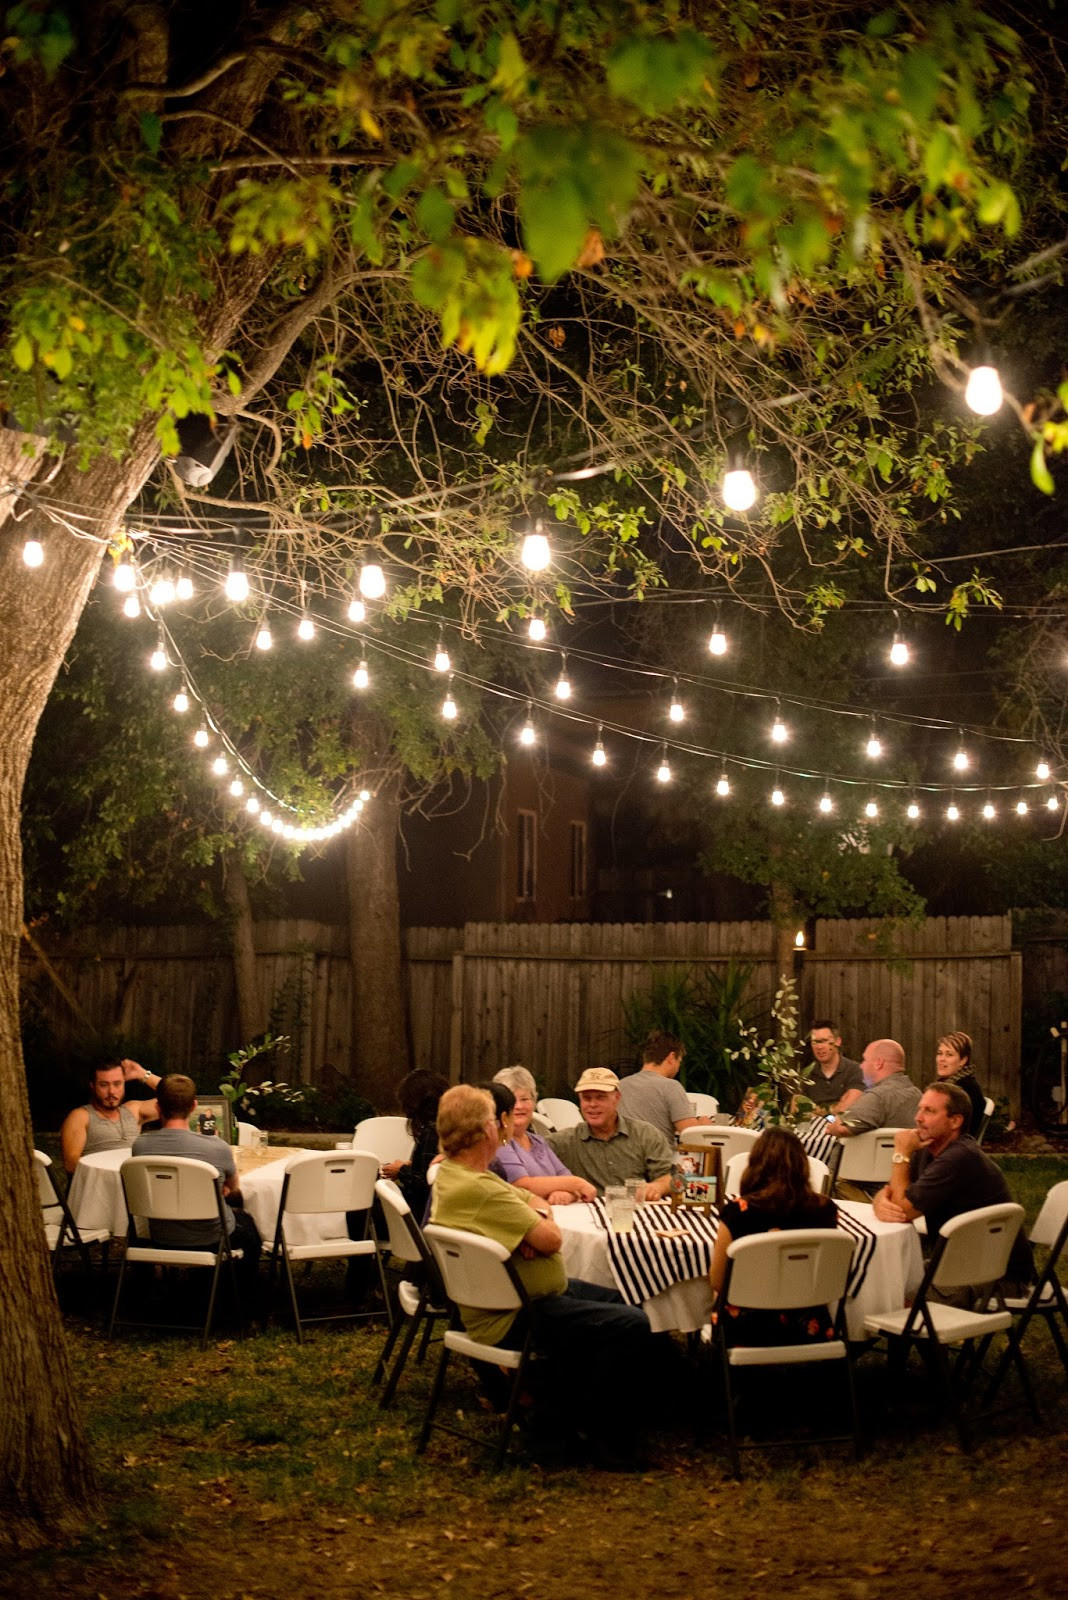 Ideas For Backyard Party  Domestic Fashionista Backyard Birthday Party For the Guy